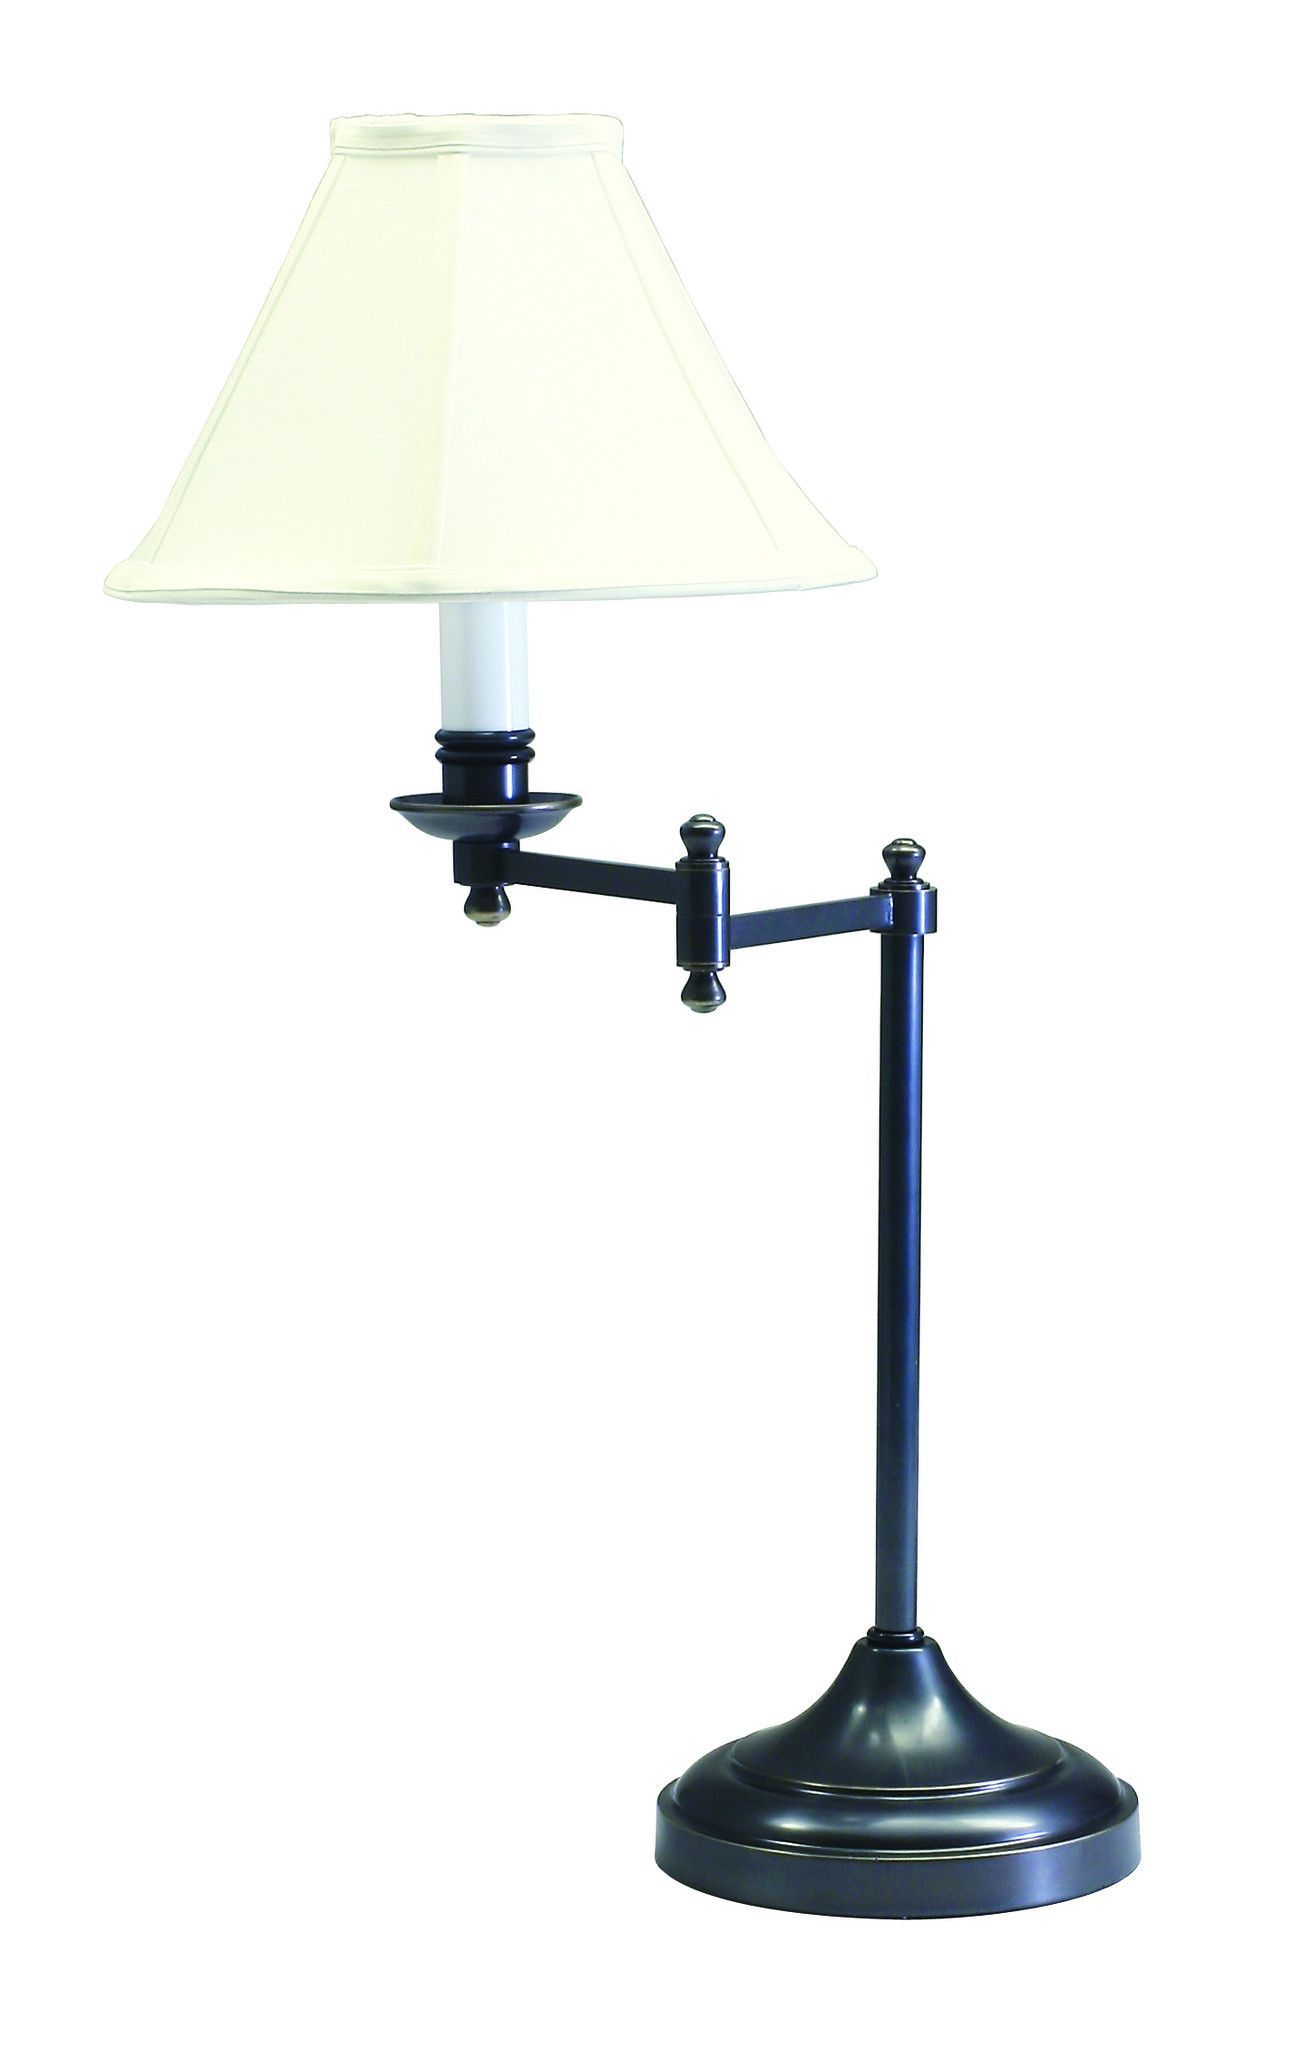 Oil Rubbed Bronze Table Lamp with swing arm